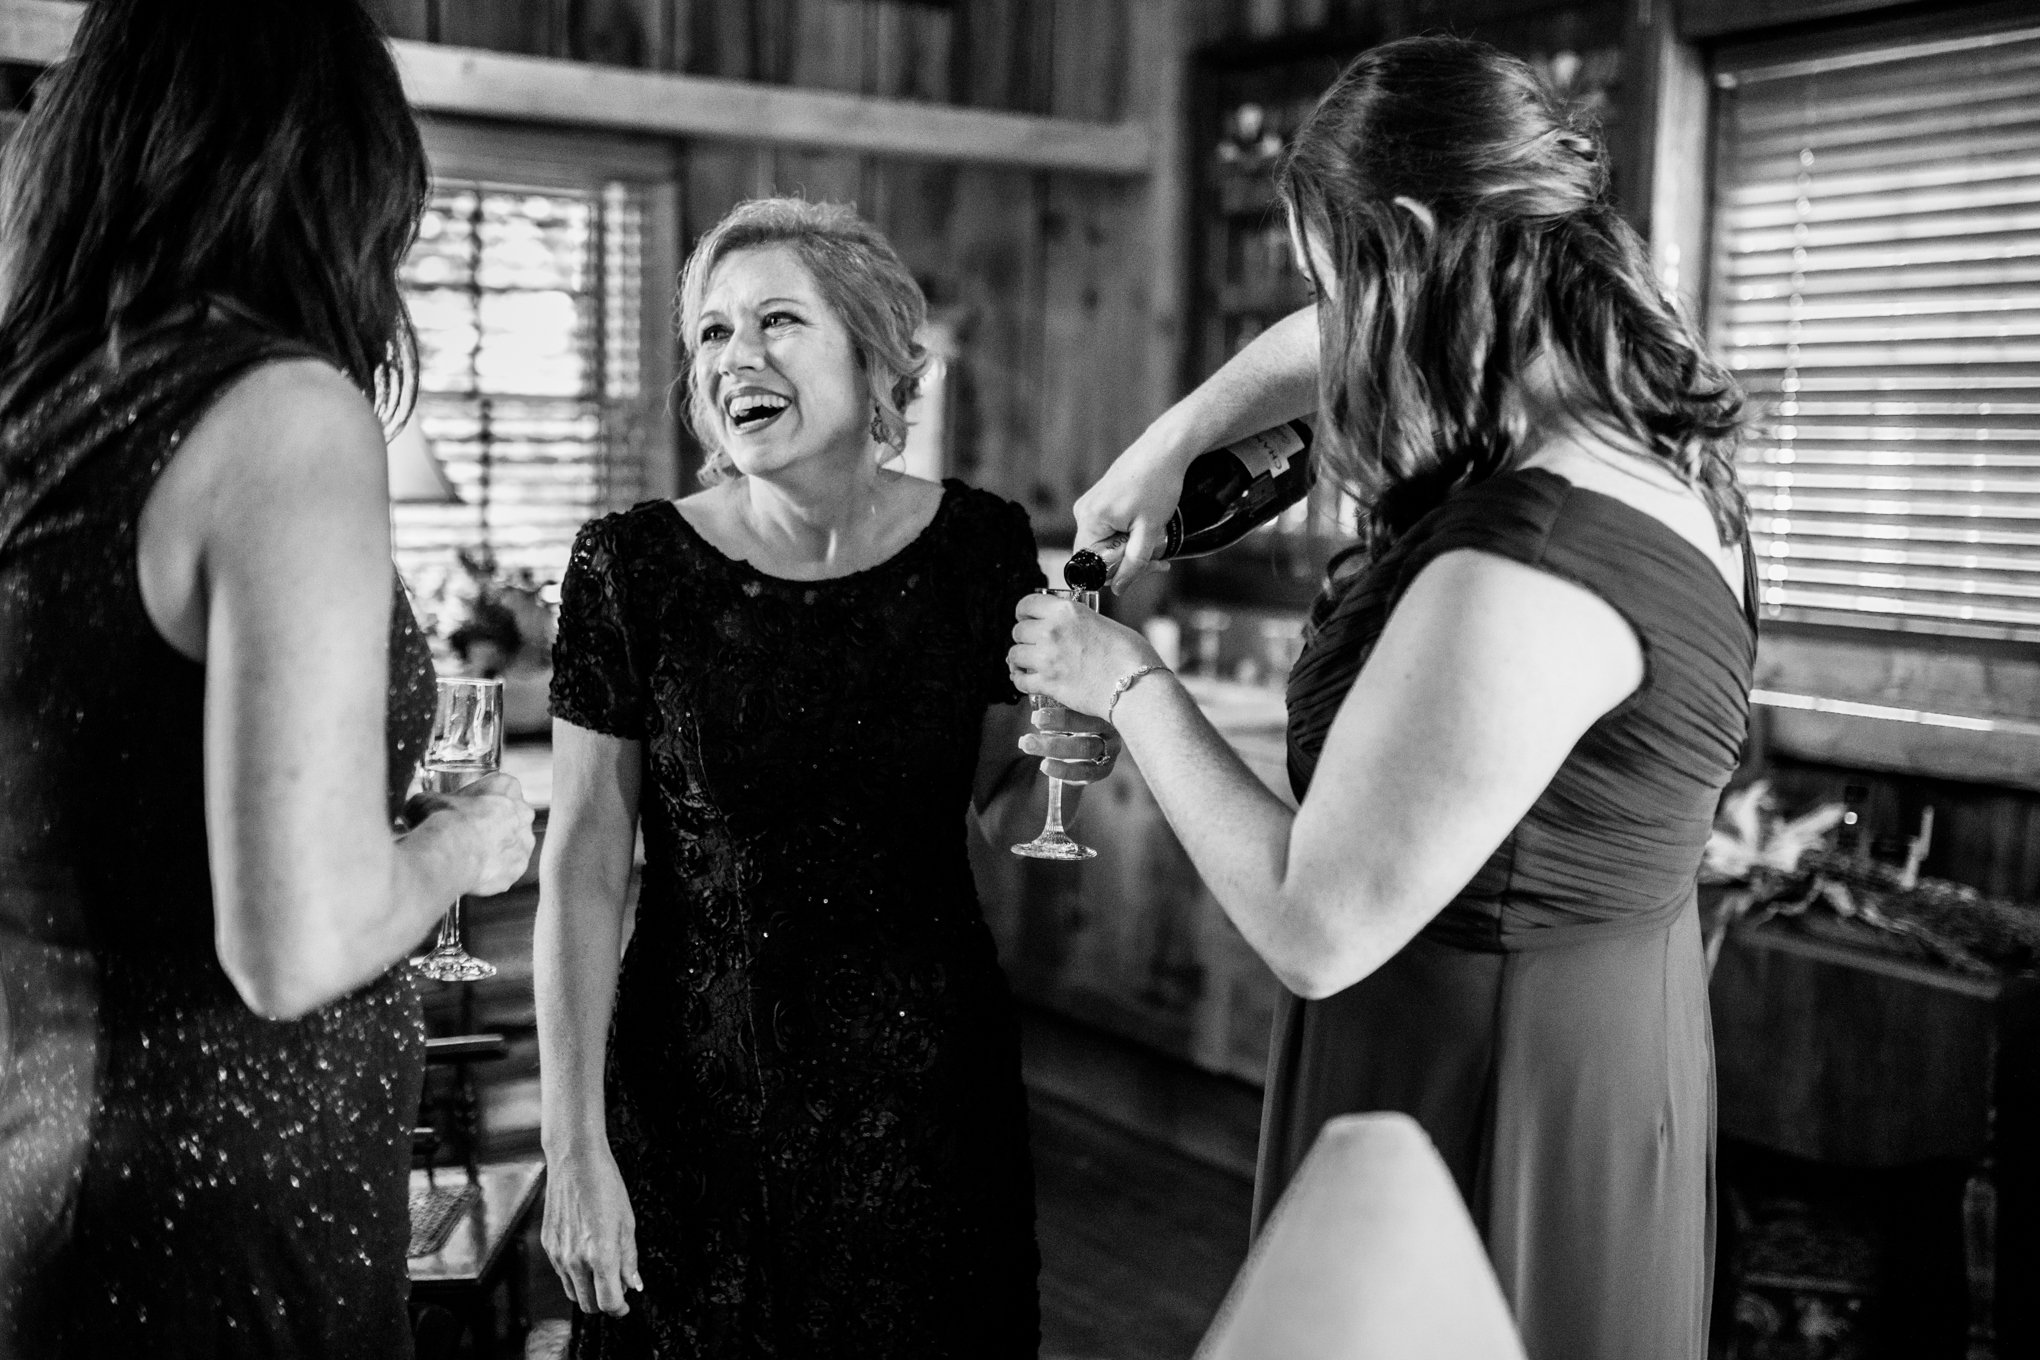 Mother of bride with glass of champagne before ceremony